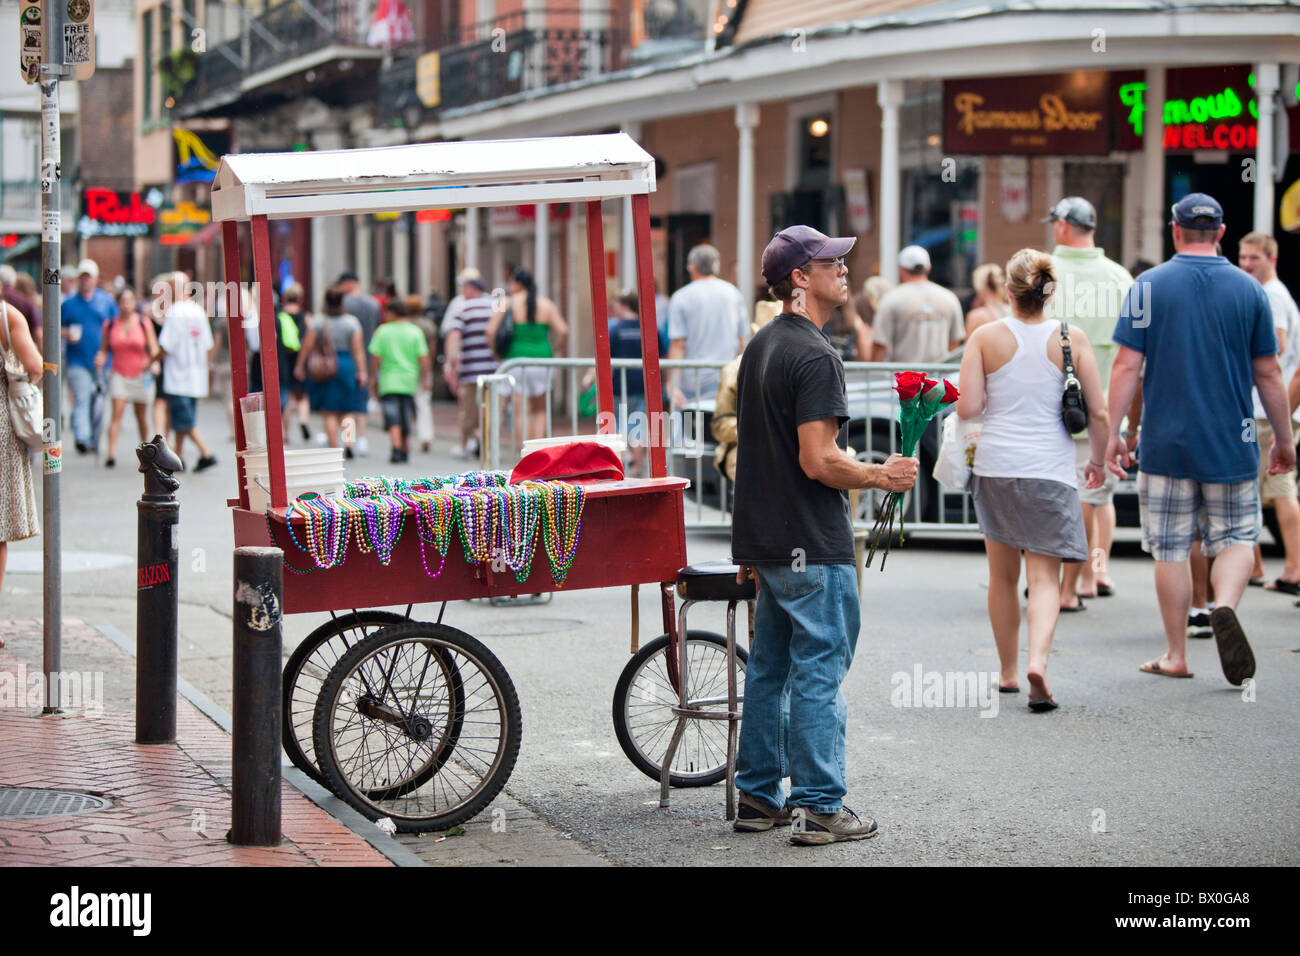 A man sells Mardi Gras beads on Bourbon Street in New Orleans, Louisiana's French Quarter. - Stock Image